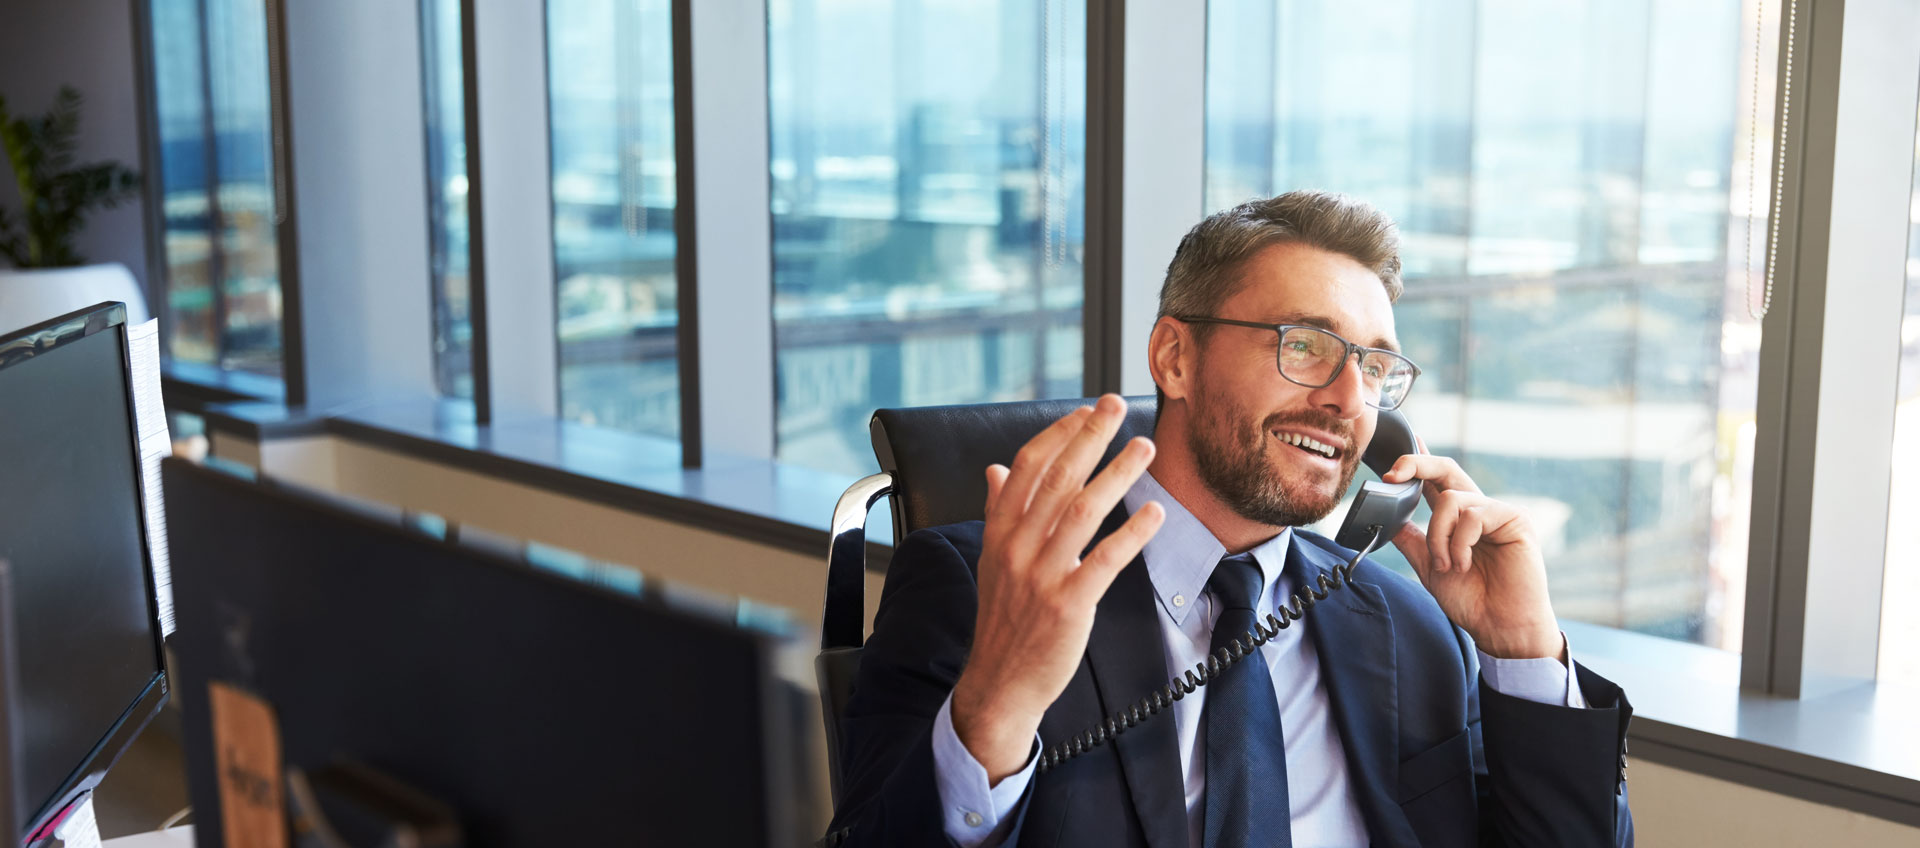 Photo of businessman talking on phone in high-rise office